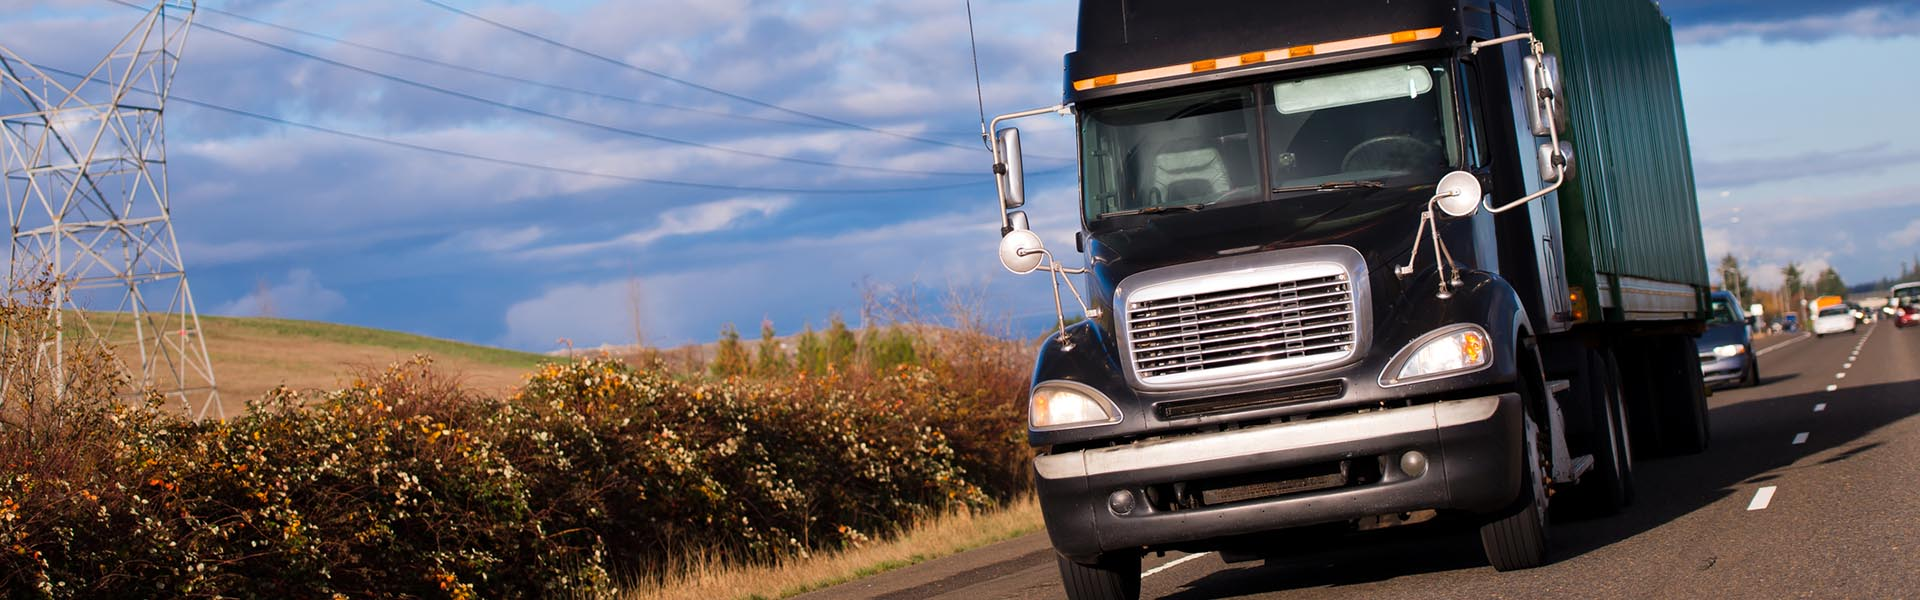 DOT Physicals for certified truckers in Southern Maryland and Washington, D.C.